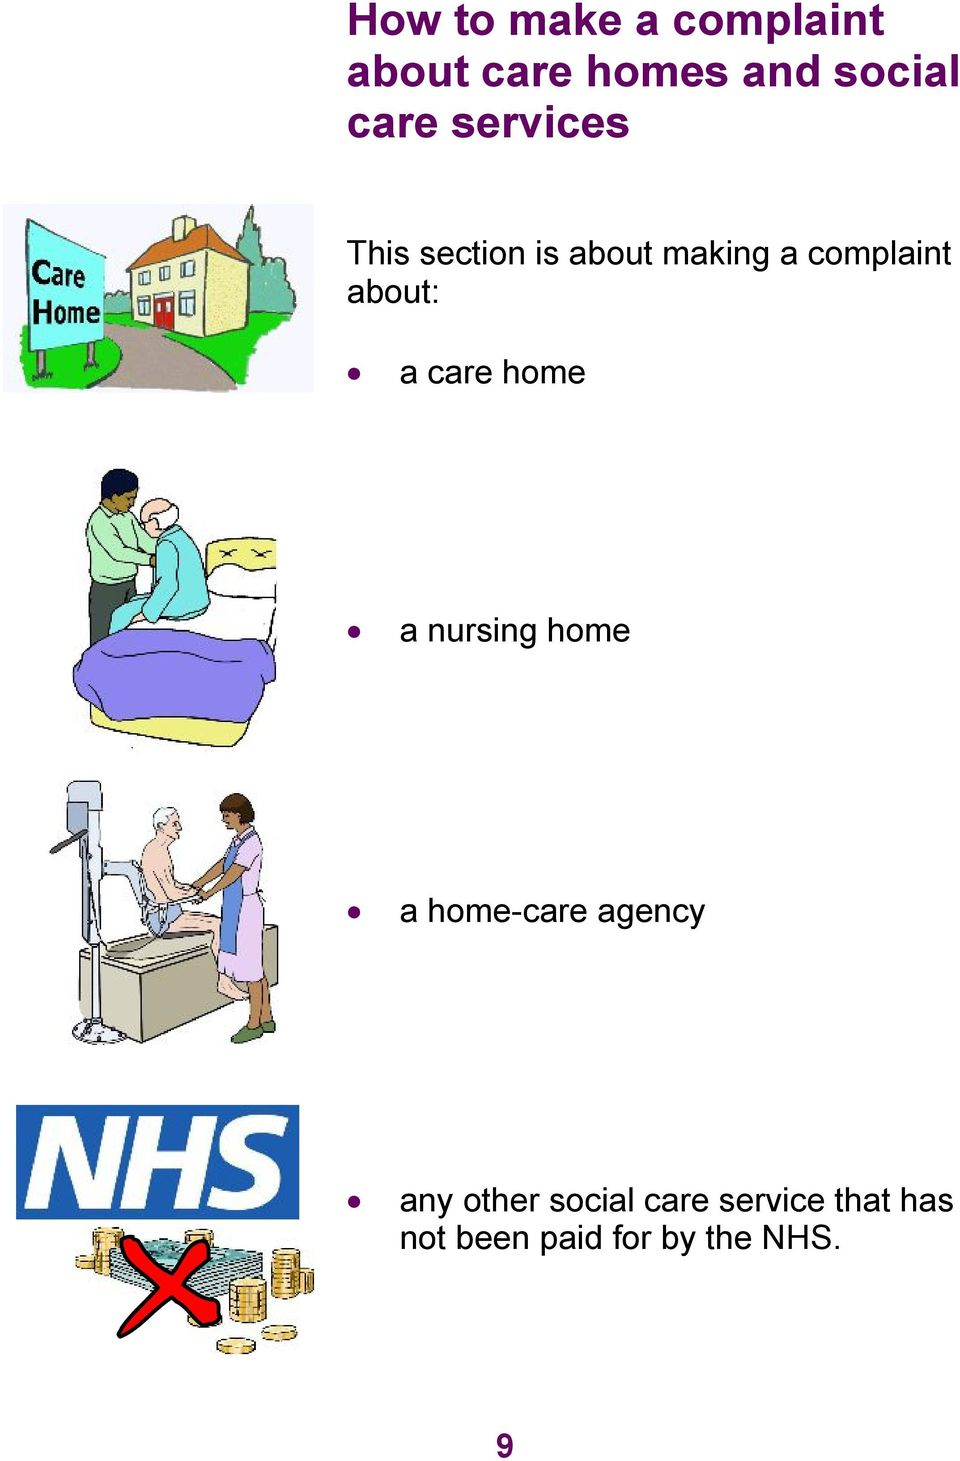 a care home a nursing home a home-care agency any other